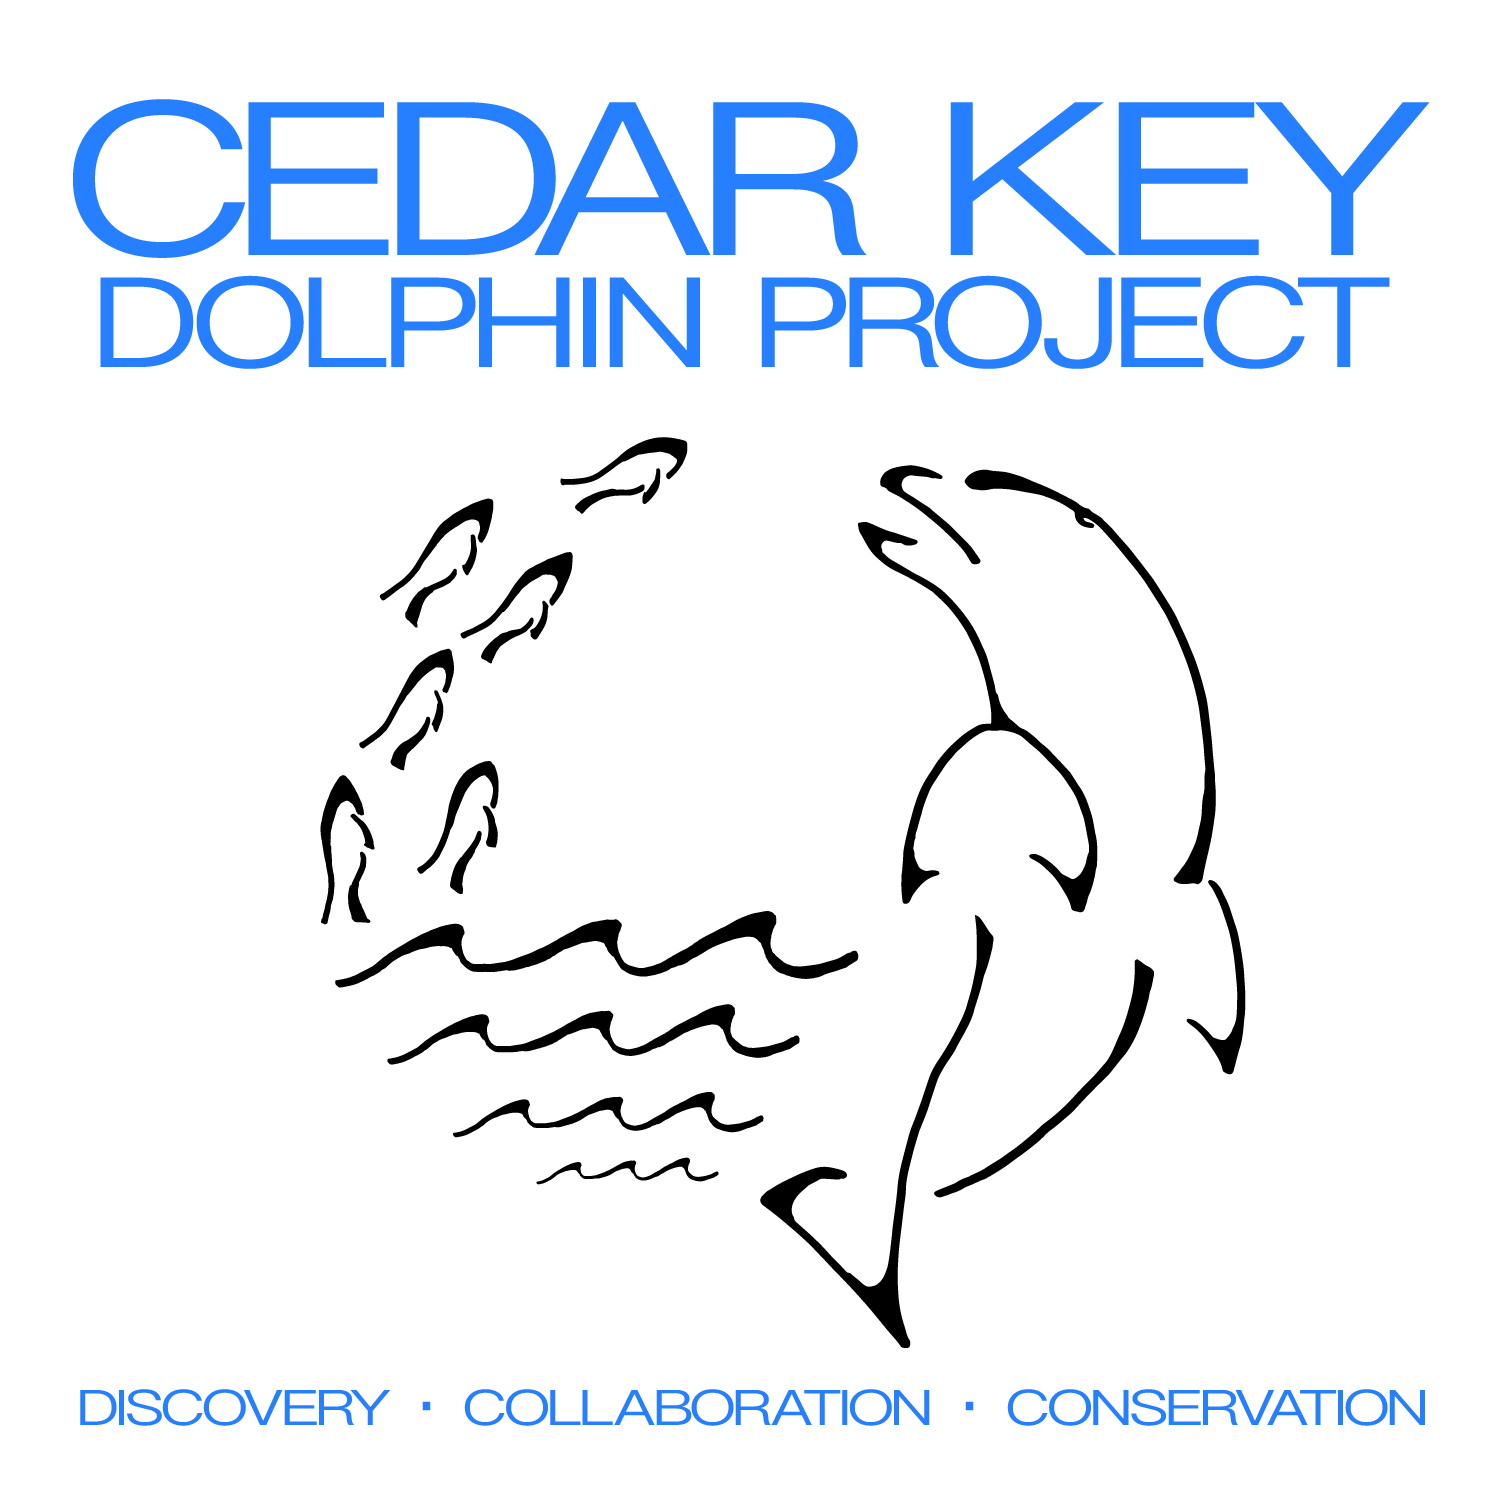 Cedar Key Dolphin Project